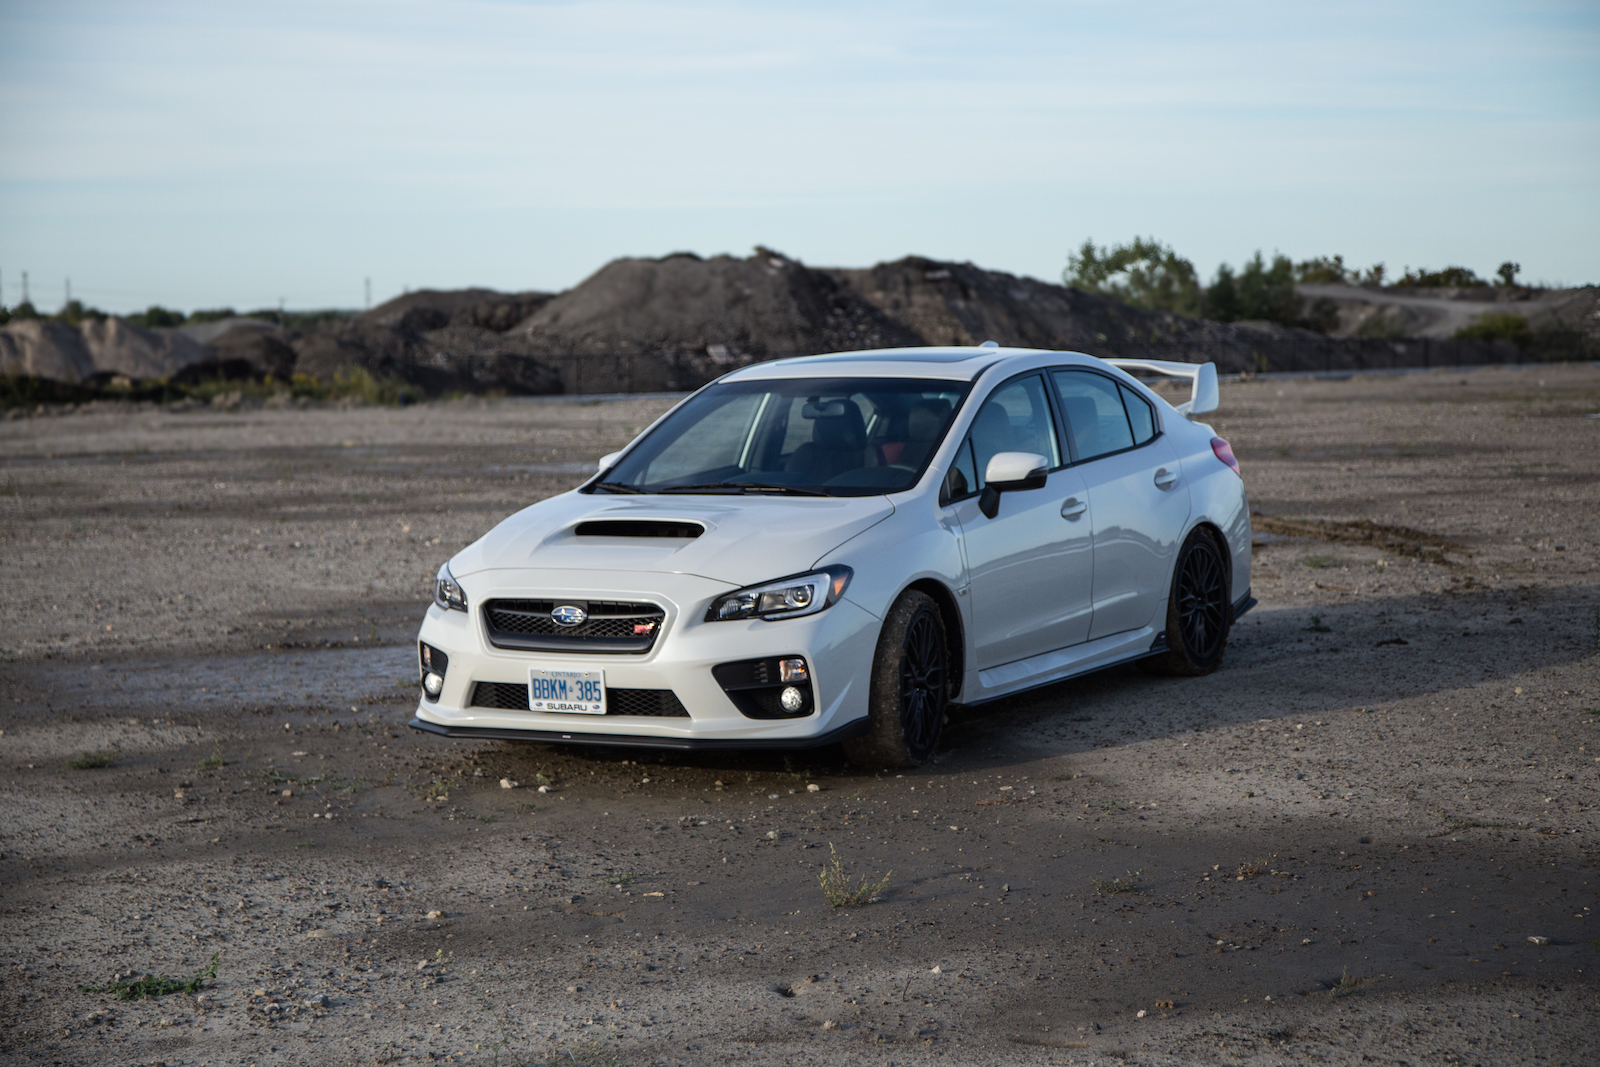 2016 Subaru Wrx Sti Hatchback for Pinterest 1600x1067